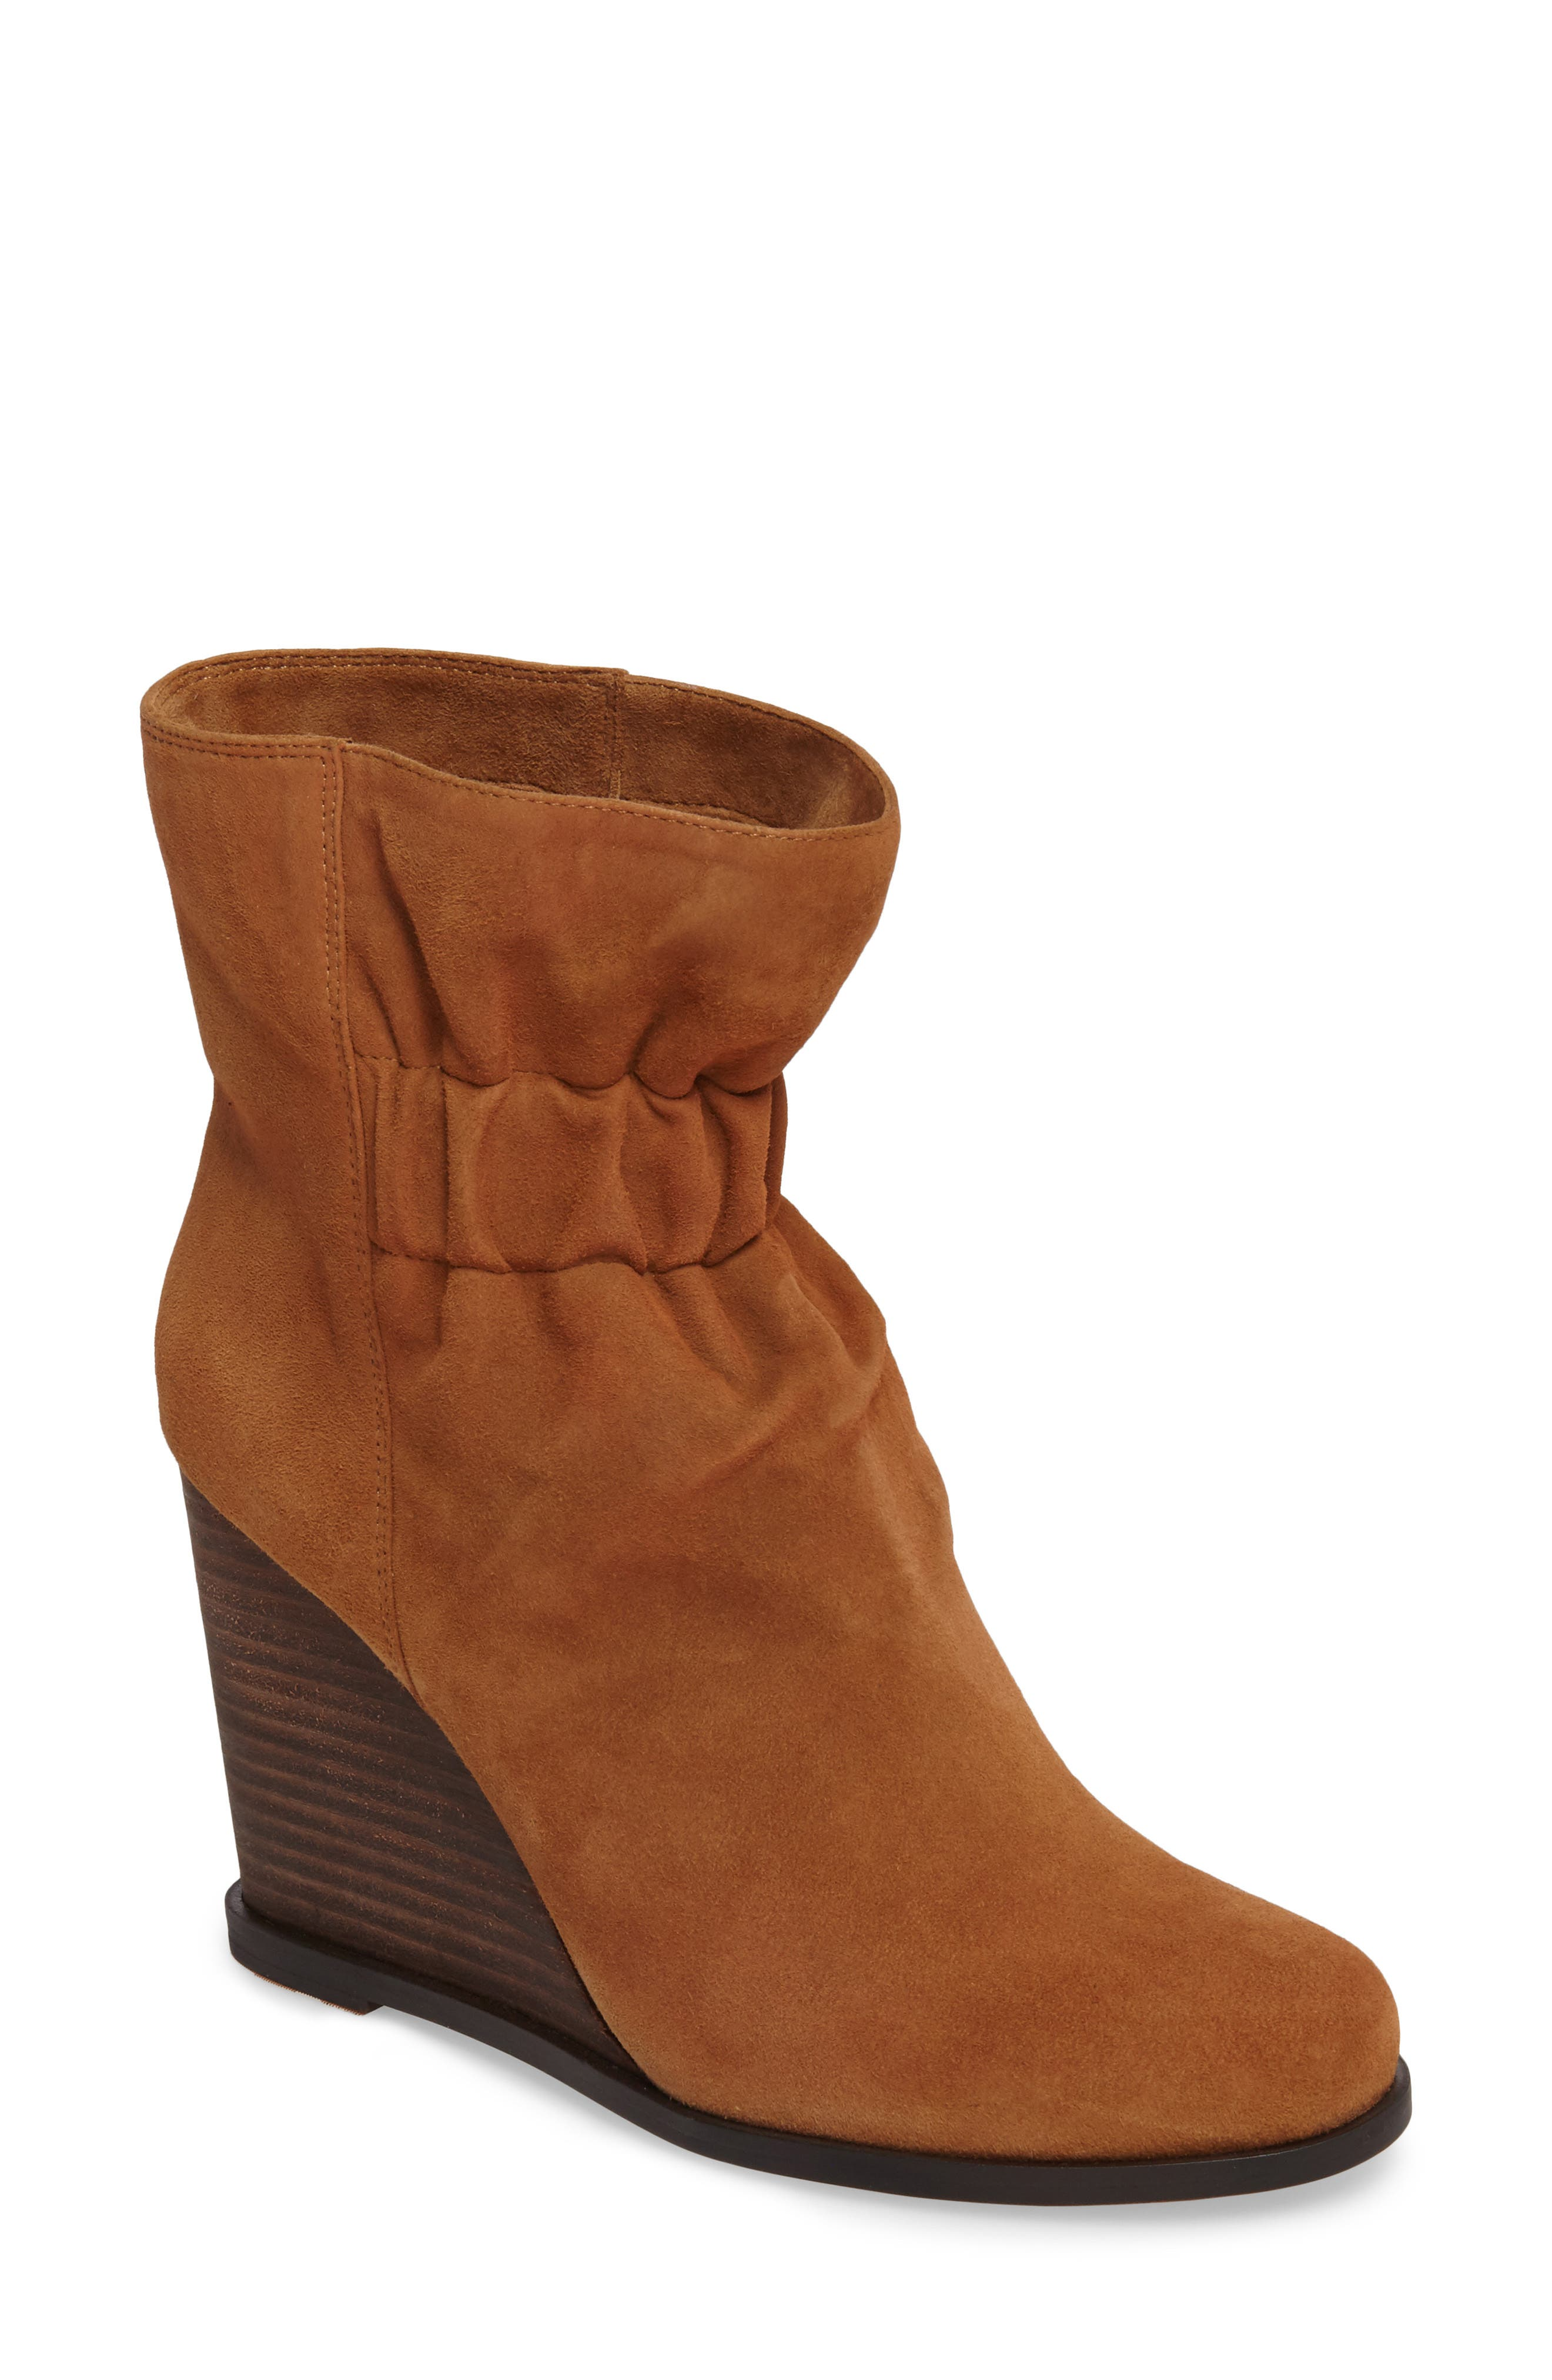 Alternate Image 1 Selected - Splendid Rebecca Wedge Bootie (Women)